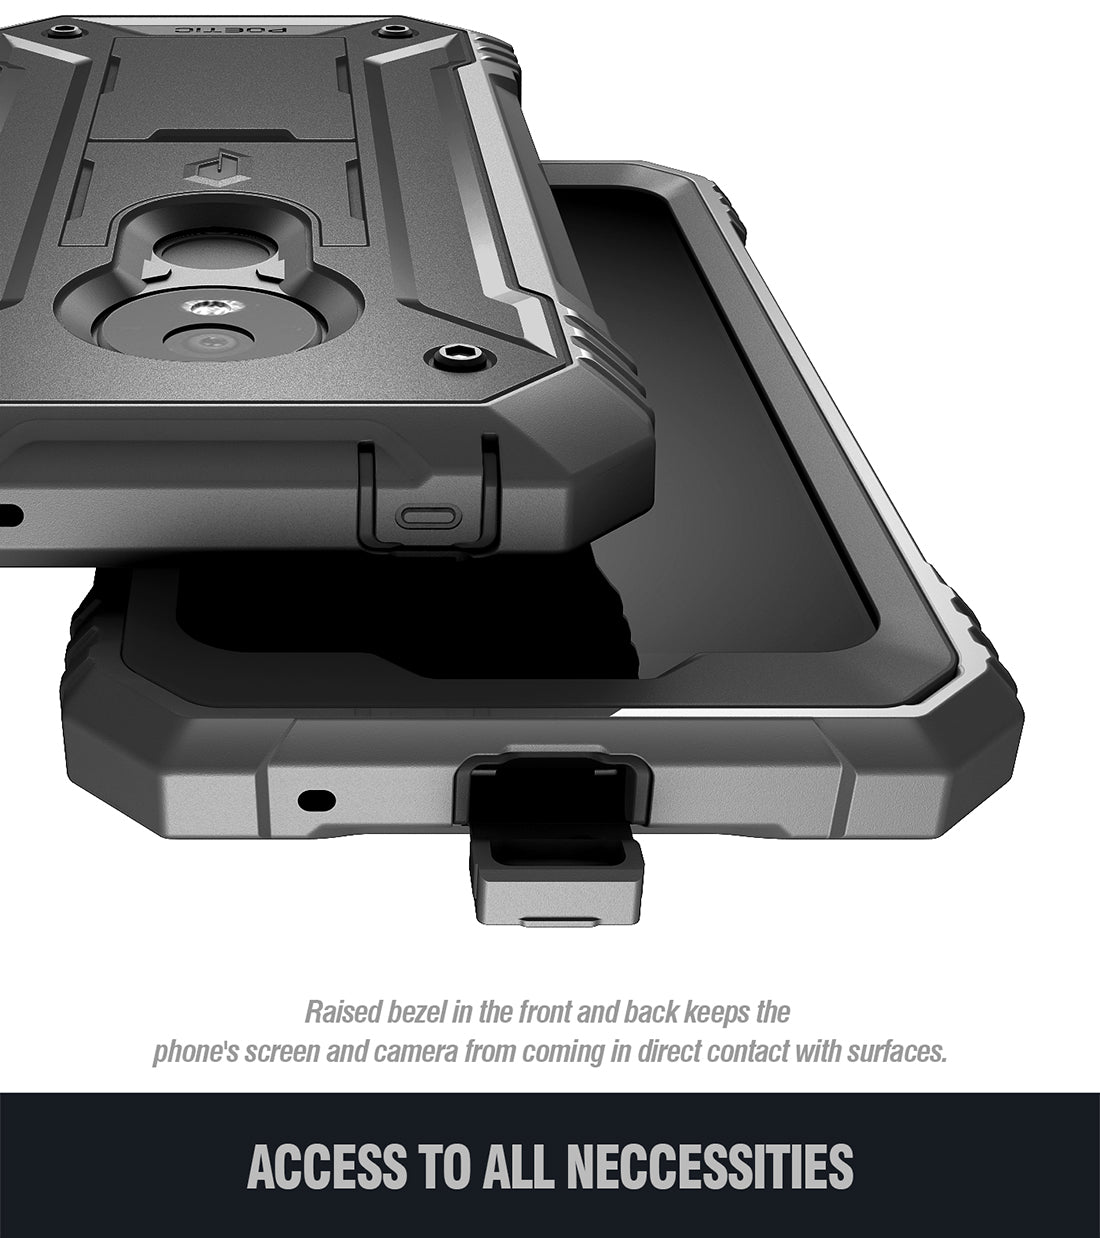 Revolution - 2019 Motorola Moto G7 Play (U.S. Version) Case